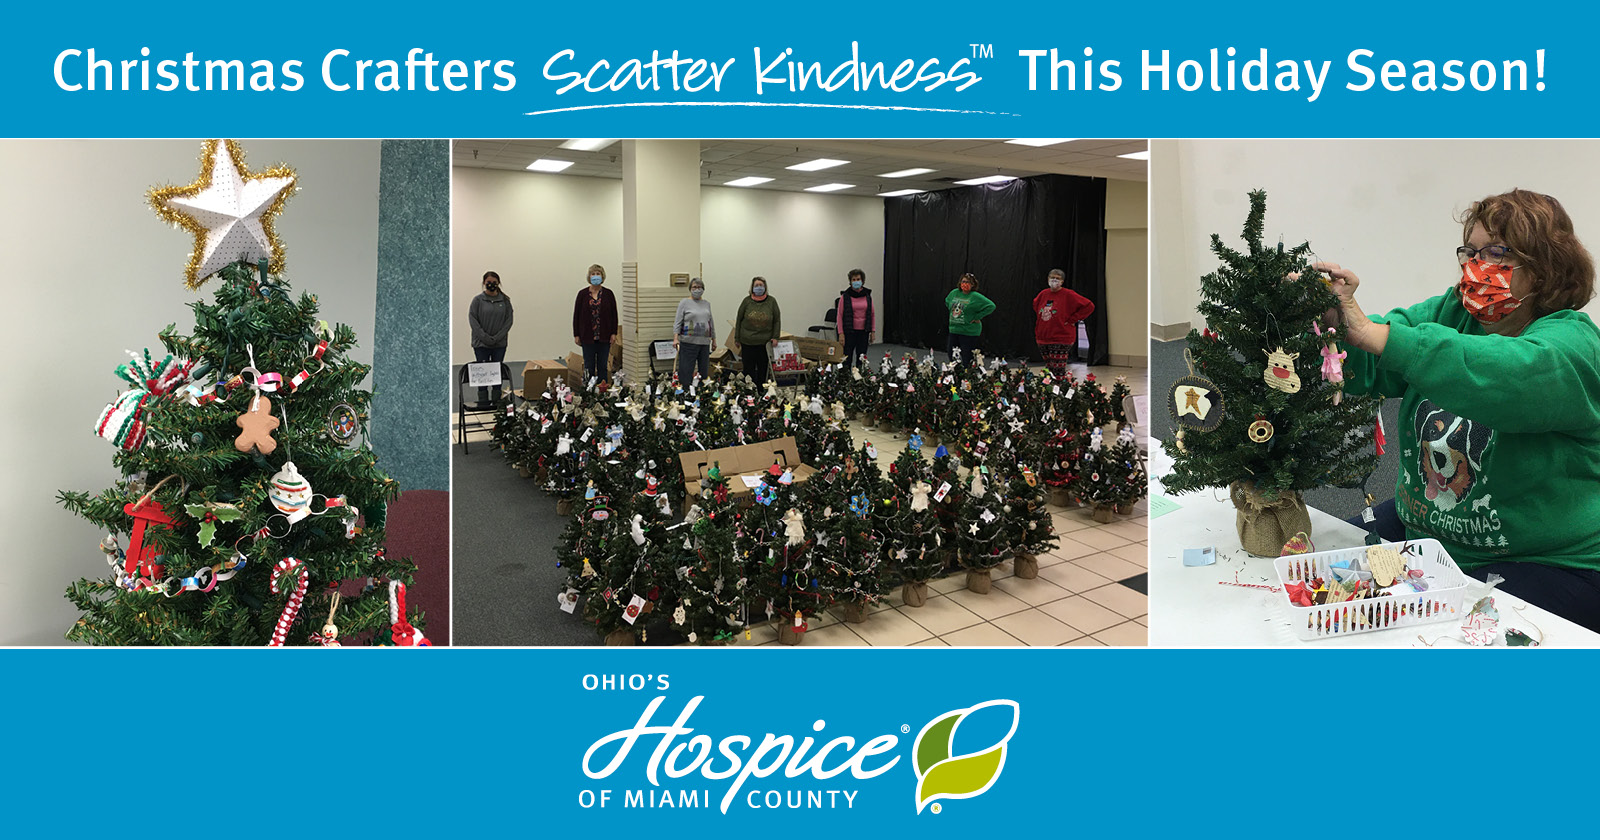 Christmas Crafters Scatter Kindness This Holiday Season! - Ohio's Hospice of Miami County